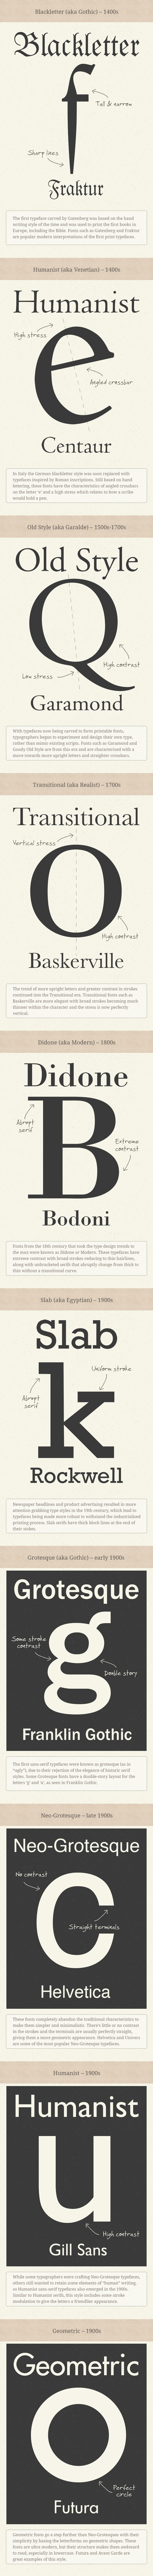 history-of-typefaces